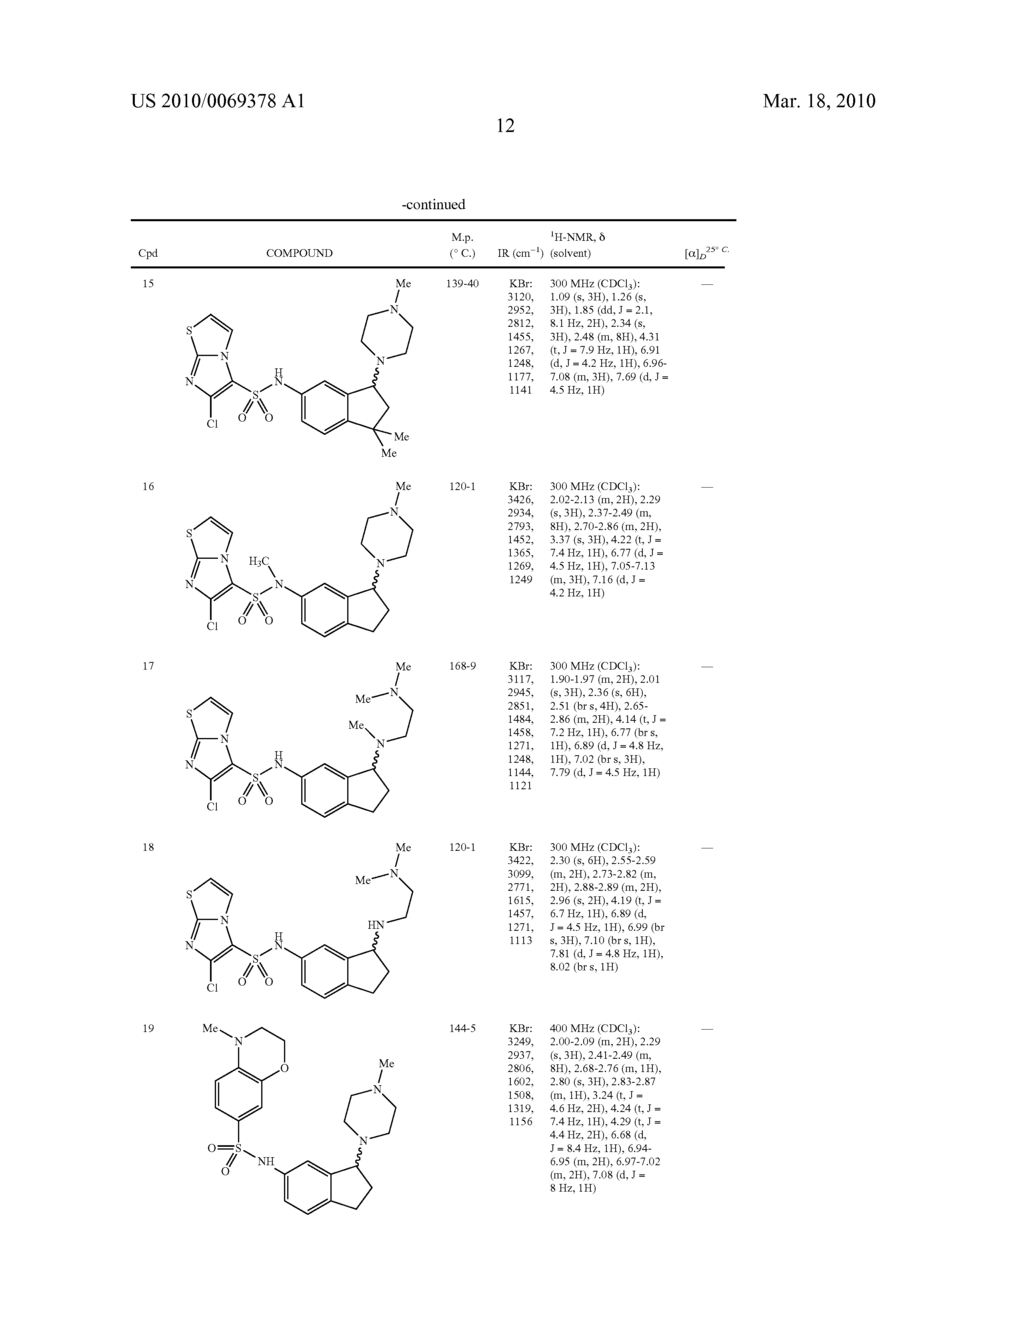 SUBSTITUTED INDANYL SULFONAMIDE COMPOUNDS, THEIR PREPARATION AND USE AS MEDICAMENTS - diagram, schematic, and image 13